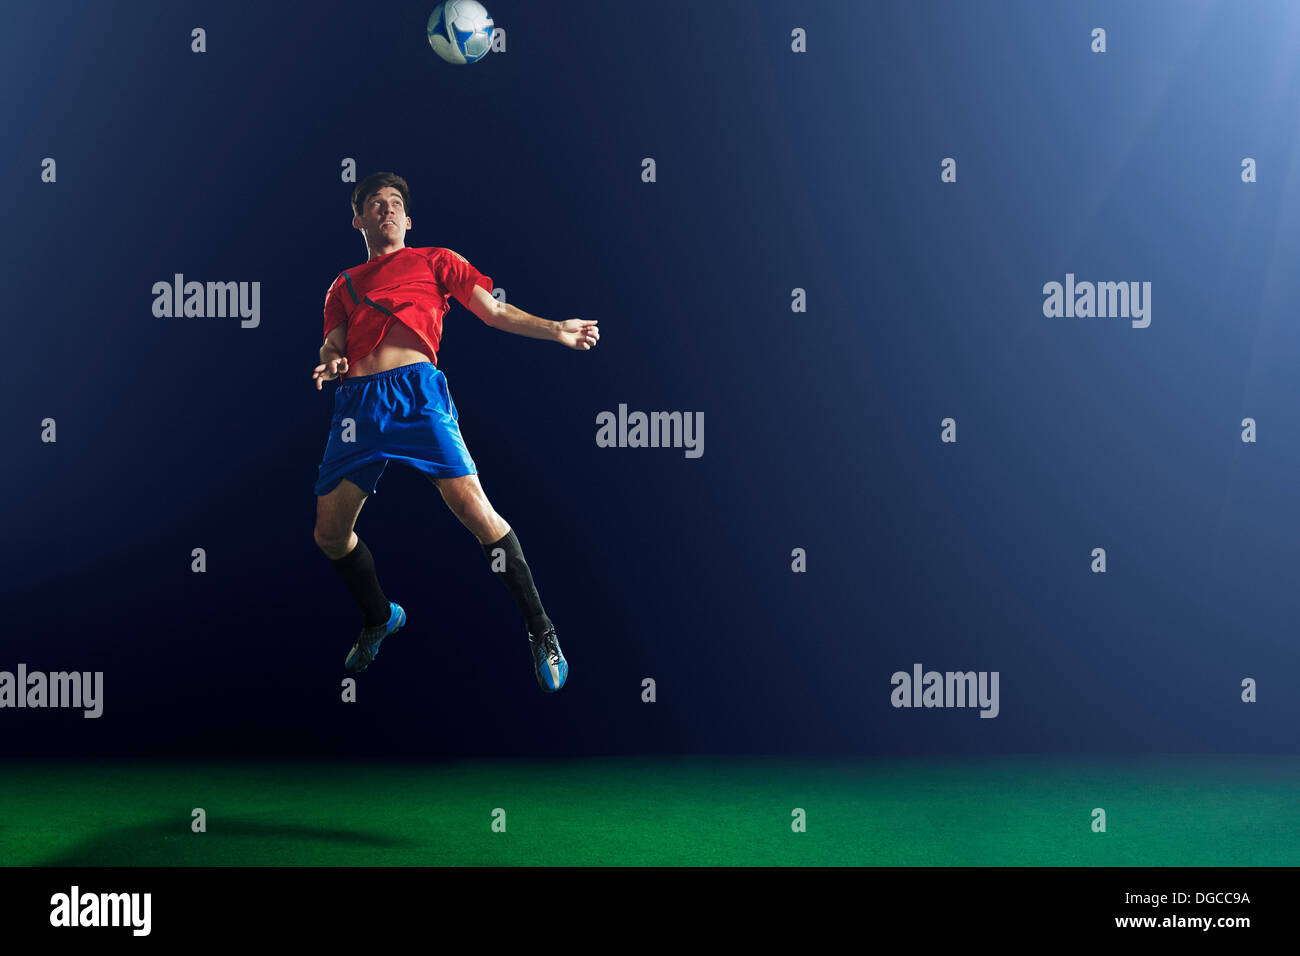 Young male soccer player heading ball - Stock Image